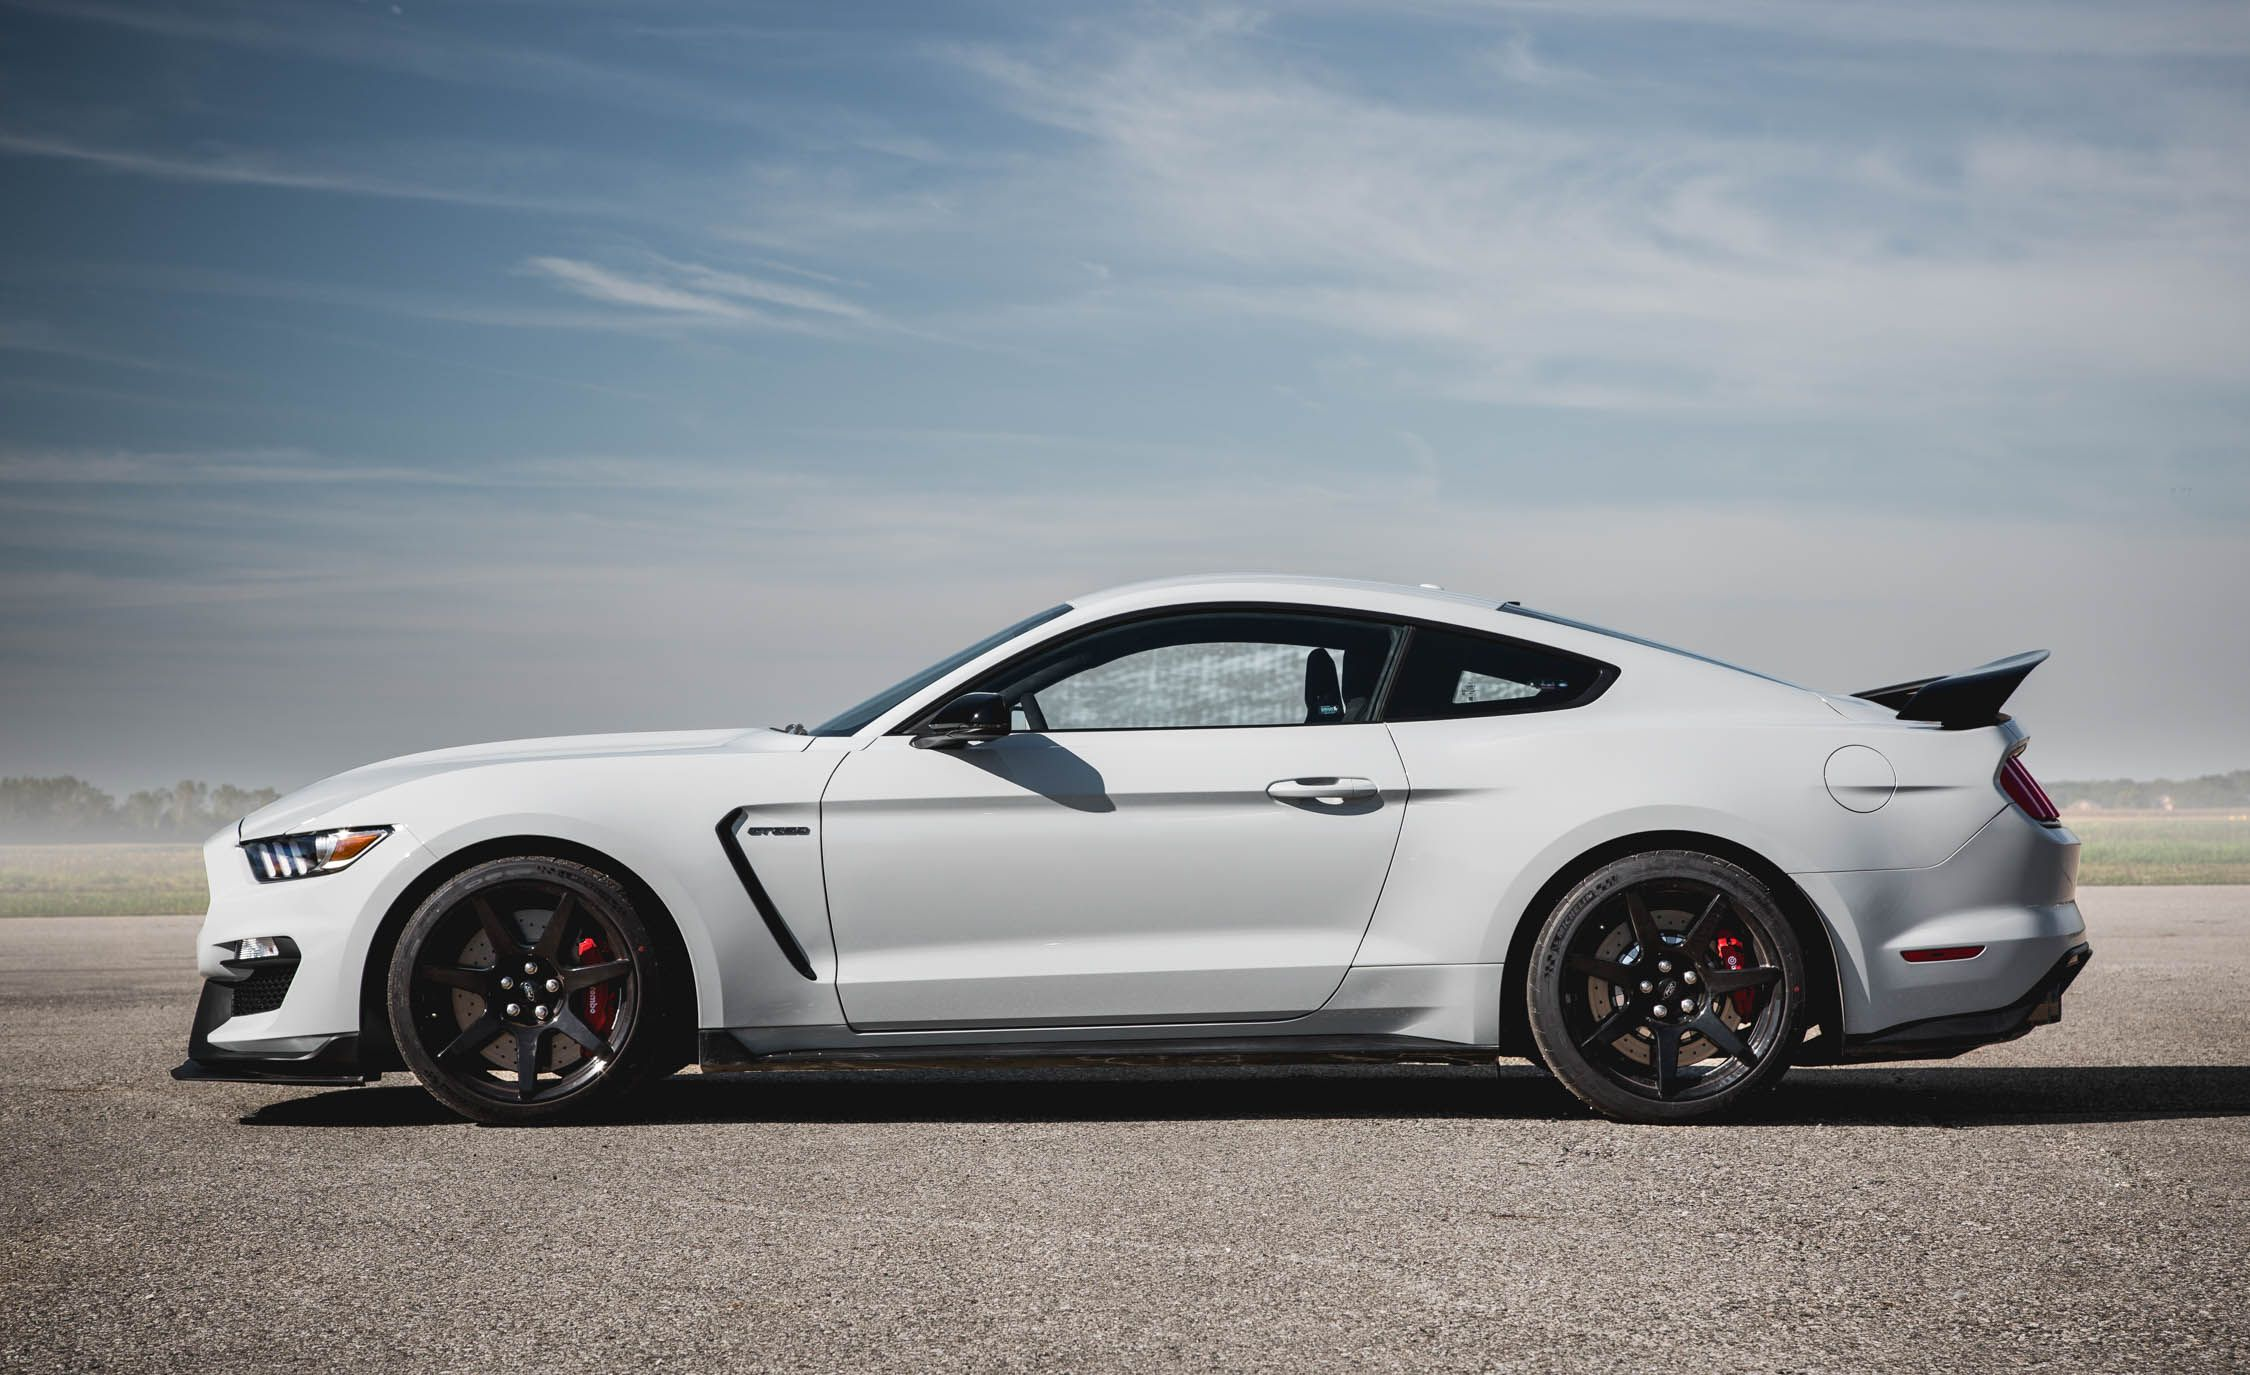 Ford Mustang Shelby Gtr Exterior Side View  Cars Performance Reviews And Test Drive